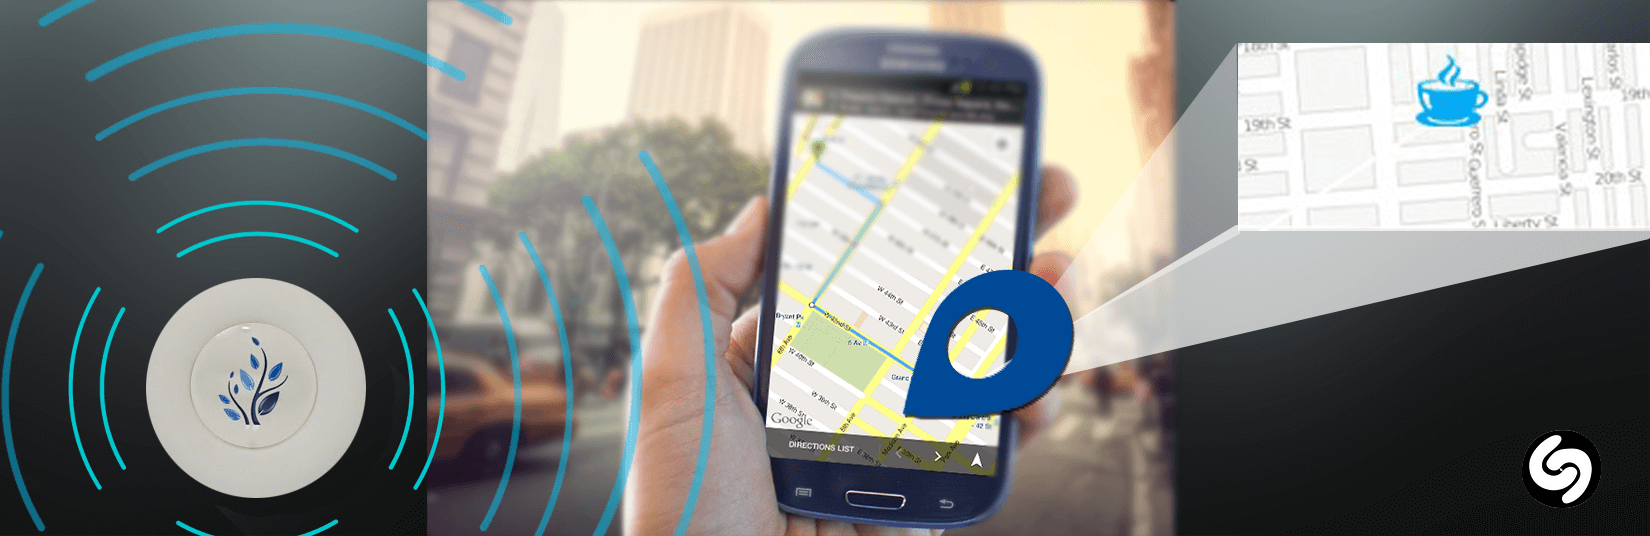 Beacons to Empower  Shazam Music App to Provide Location Based Information!